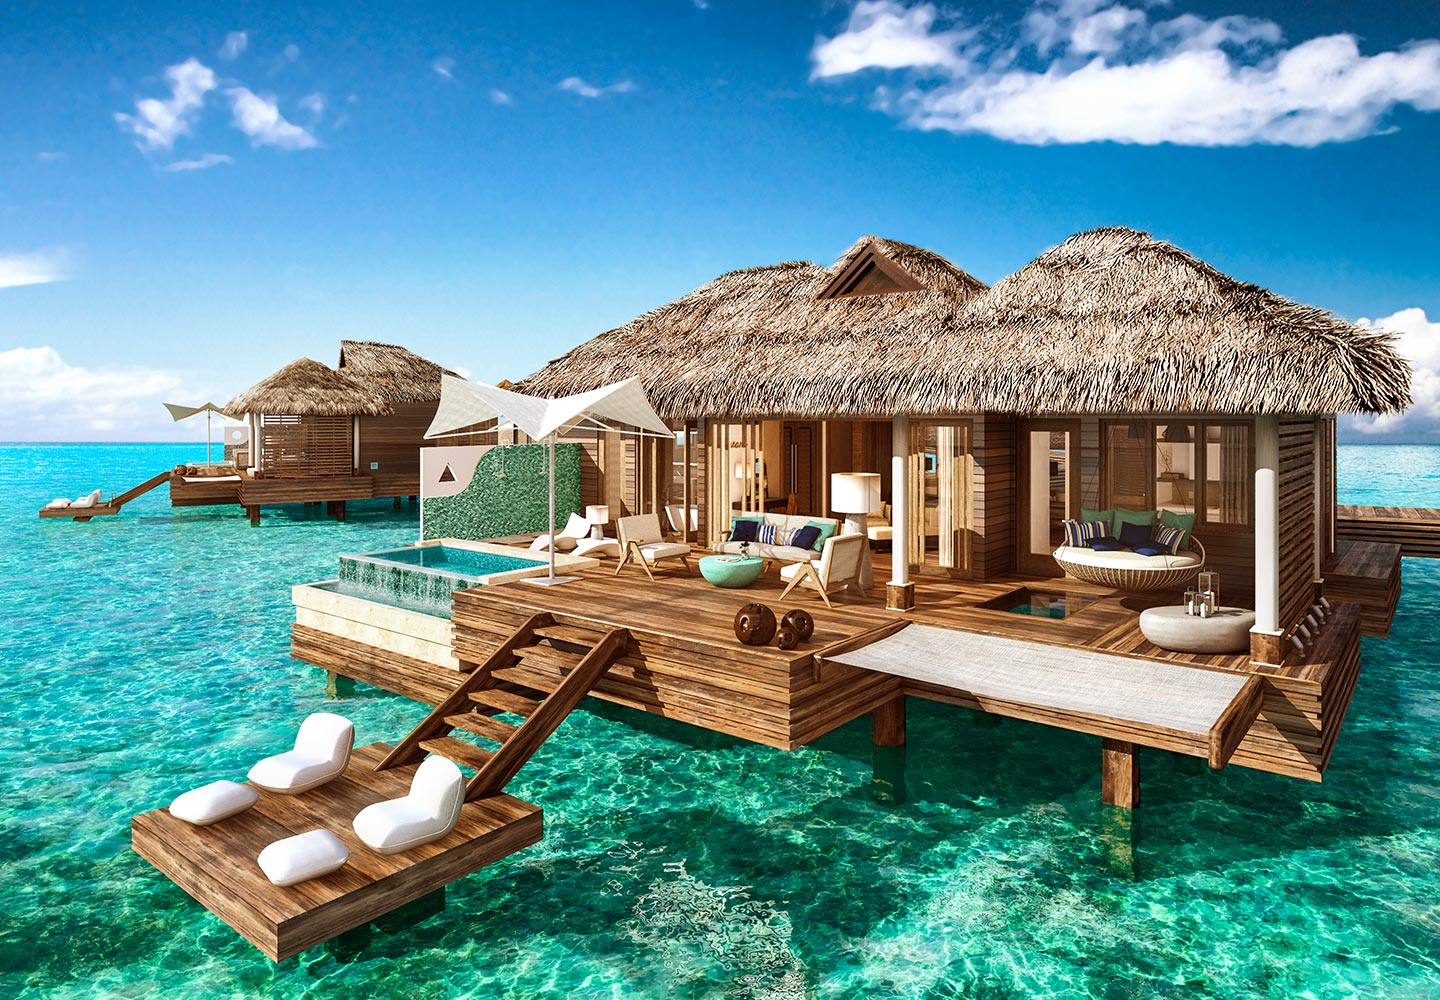 day view of the over-the-water bungalows of the Sandals Royal Caribbean Resort and Private Island, an all inclusive vacation resort